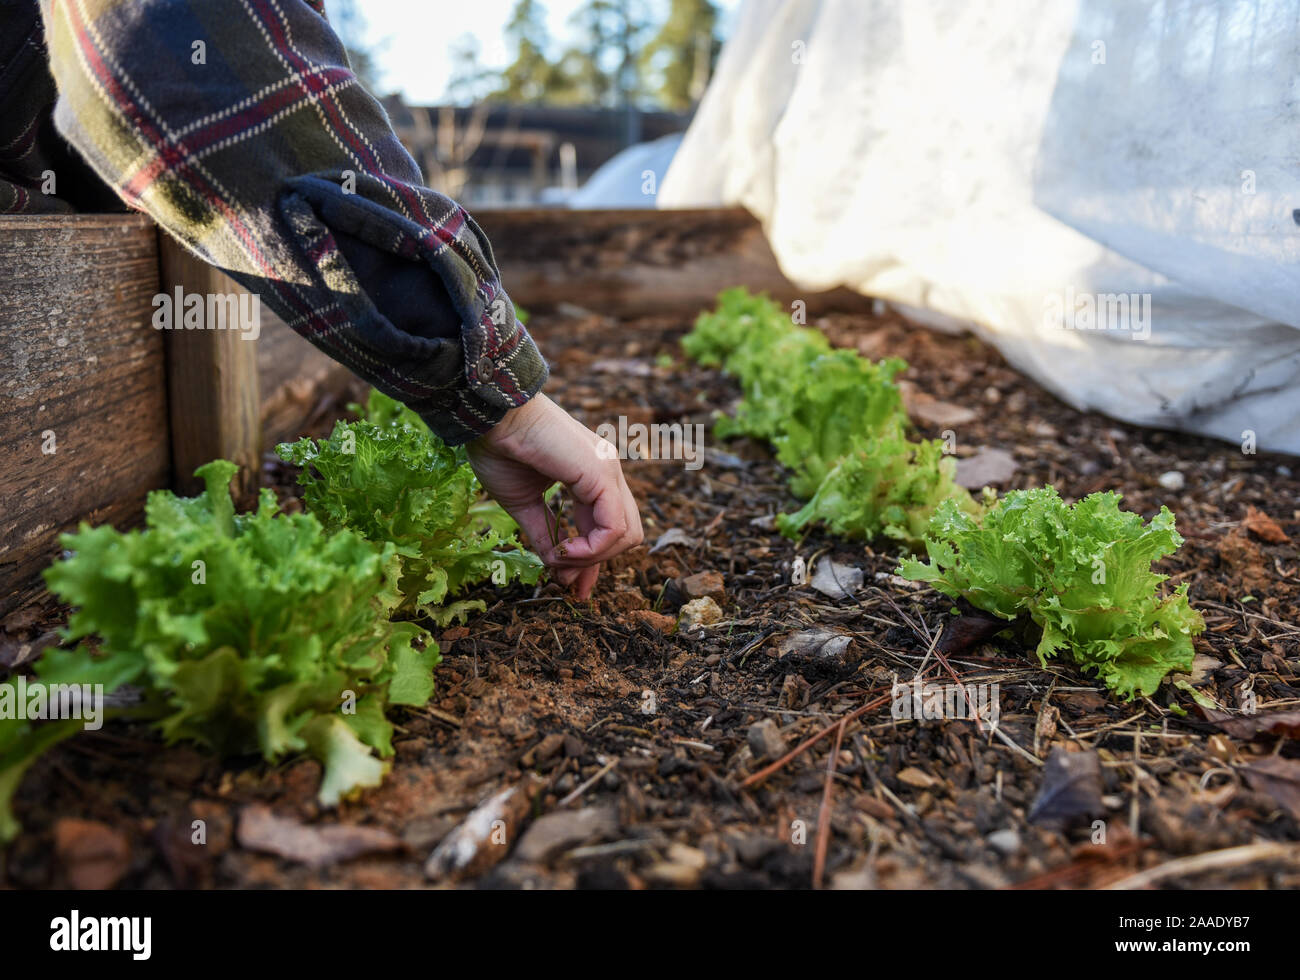 Winter gardening photos in a local garden focused on sustainability and food security in the community. Stock Photo